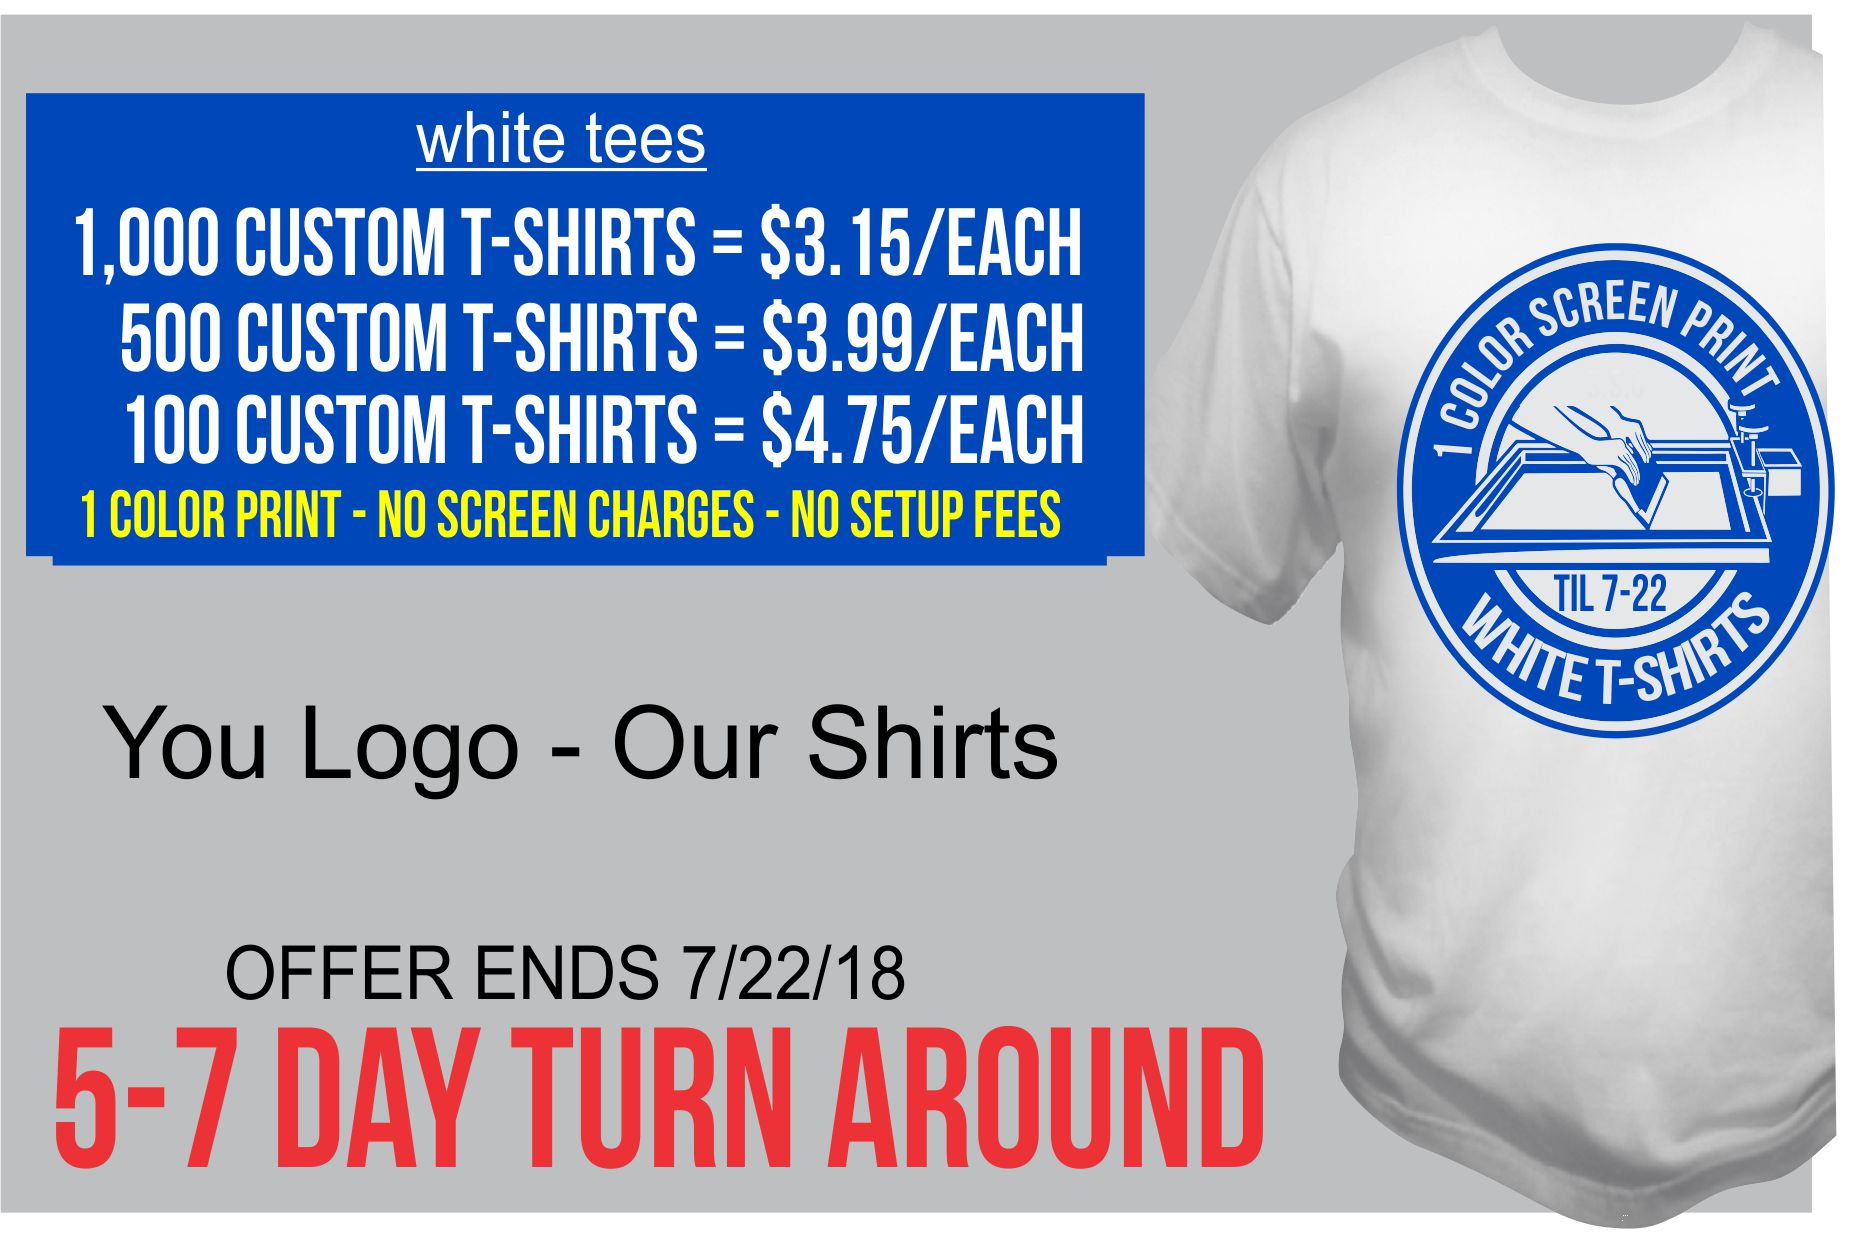 talkingink custom t-shirts white sale shirt printing